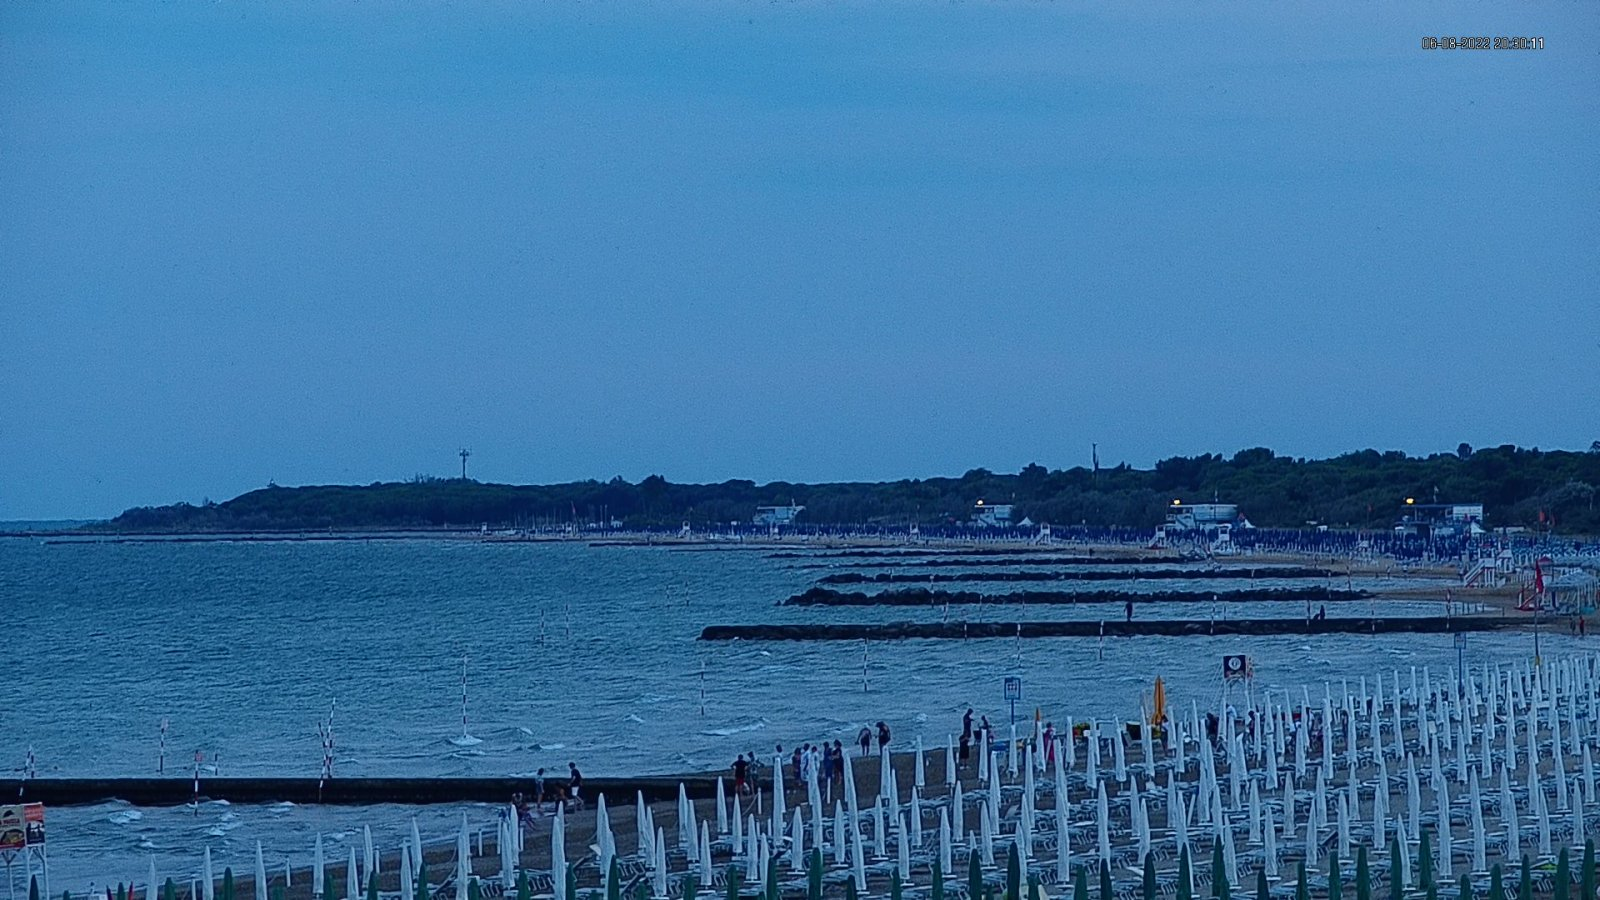 Webcam in Lignano Riviera view onto the beach